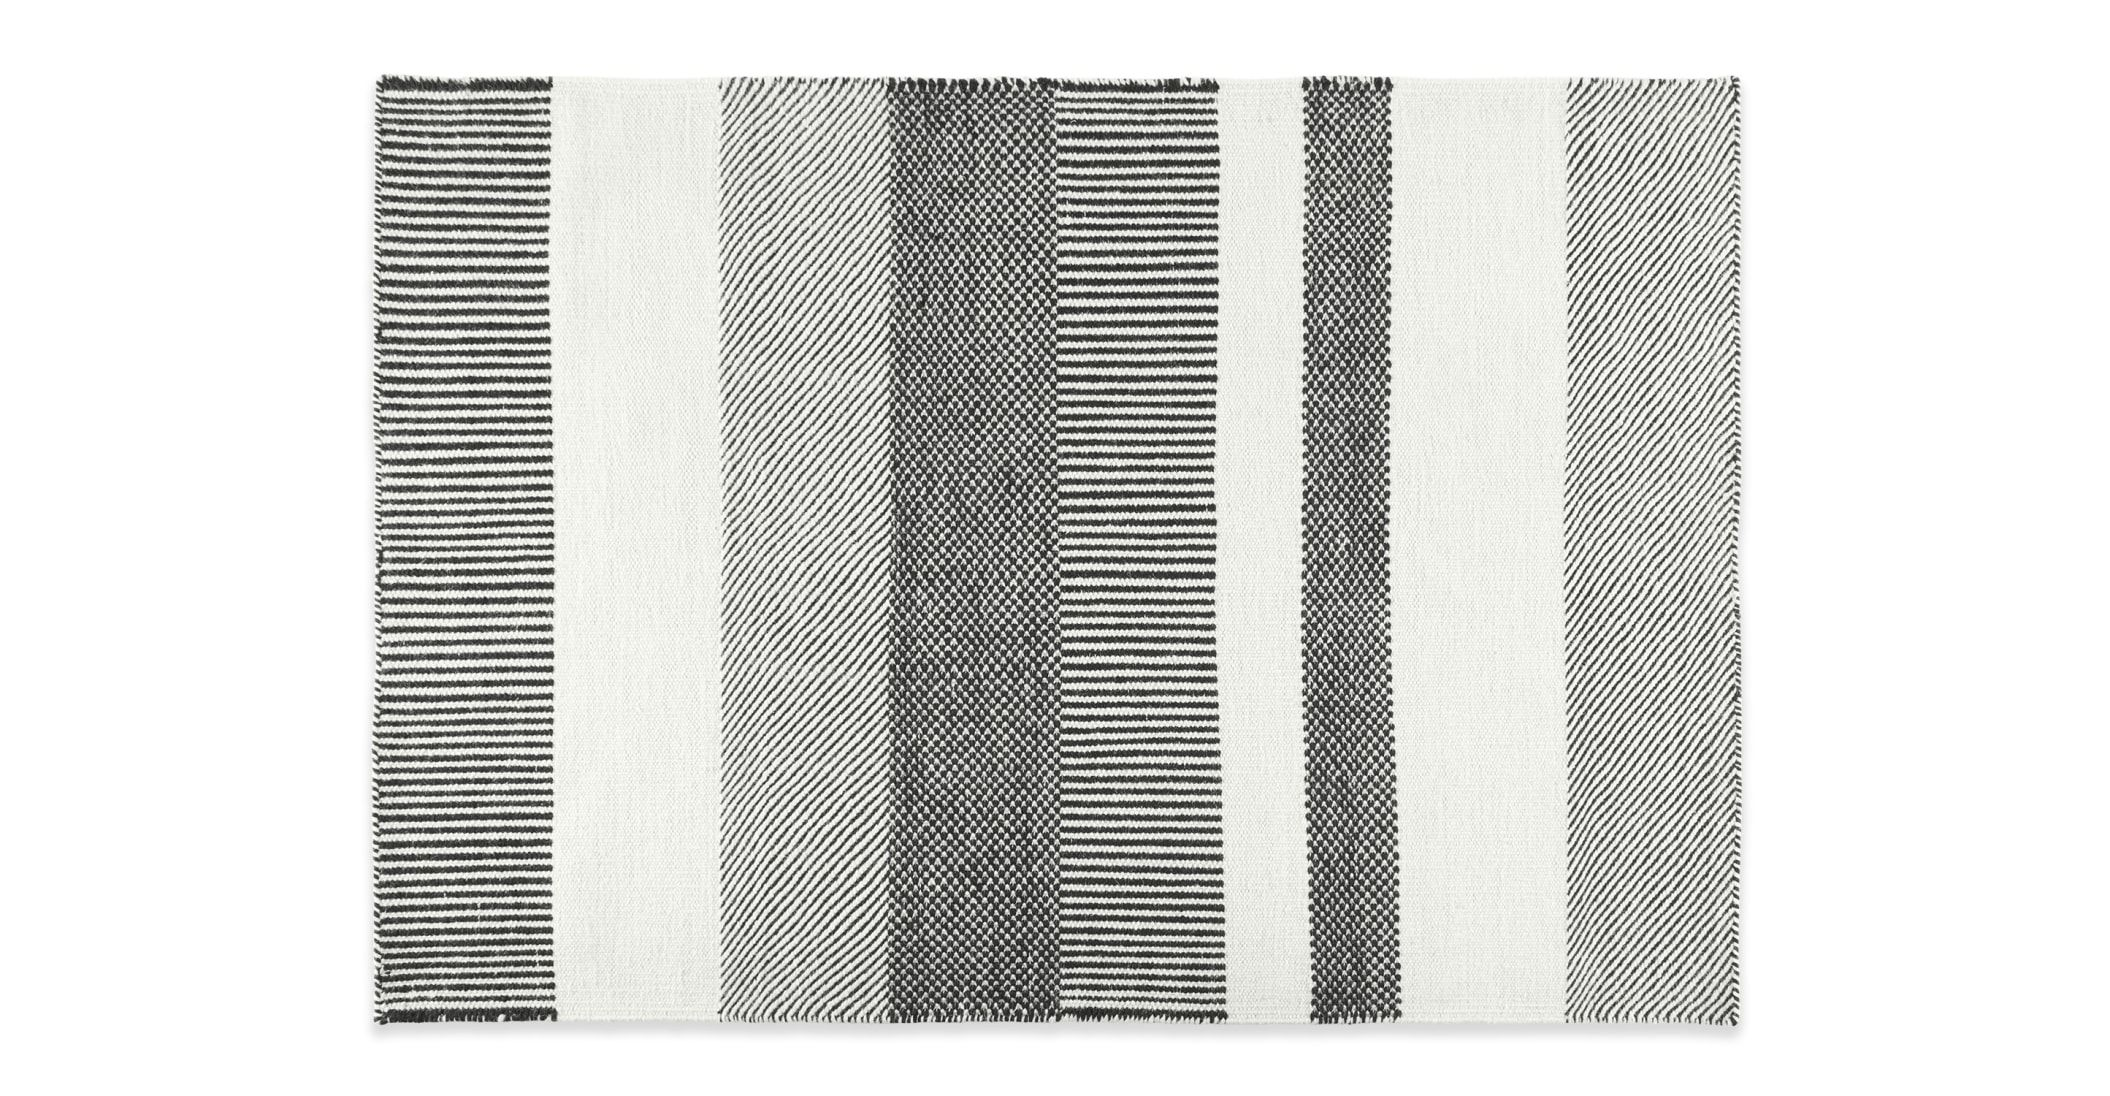 Malay Wool Stripe Rug Large 160 X 230cm Black White In 2020 Striped Rug Rugs Black And White